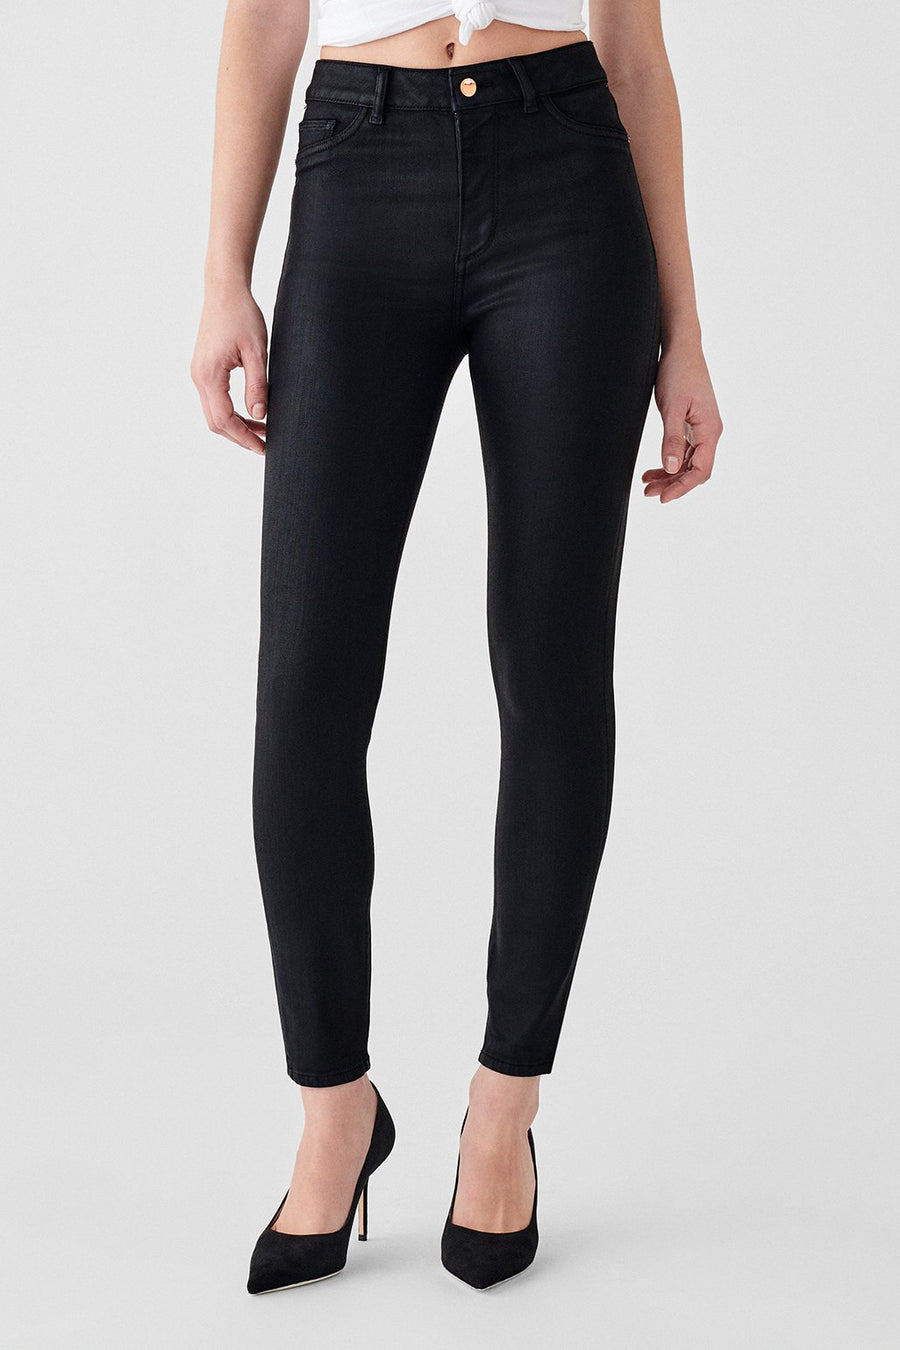 Farrow Ankle High Rise Instasculpt Skinny - Black Coated - Pavilion